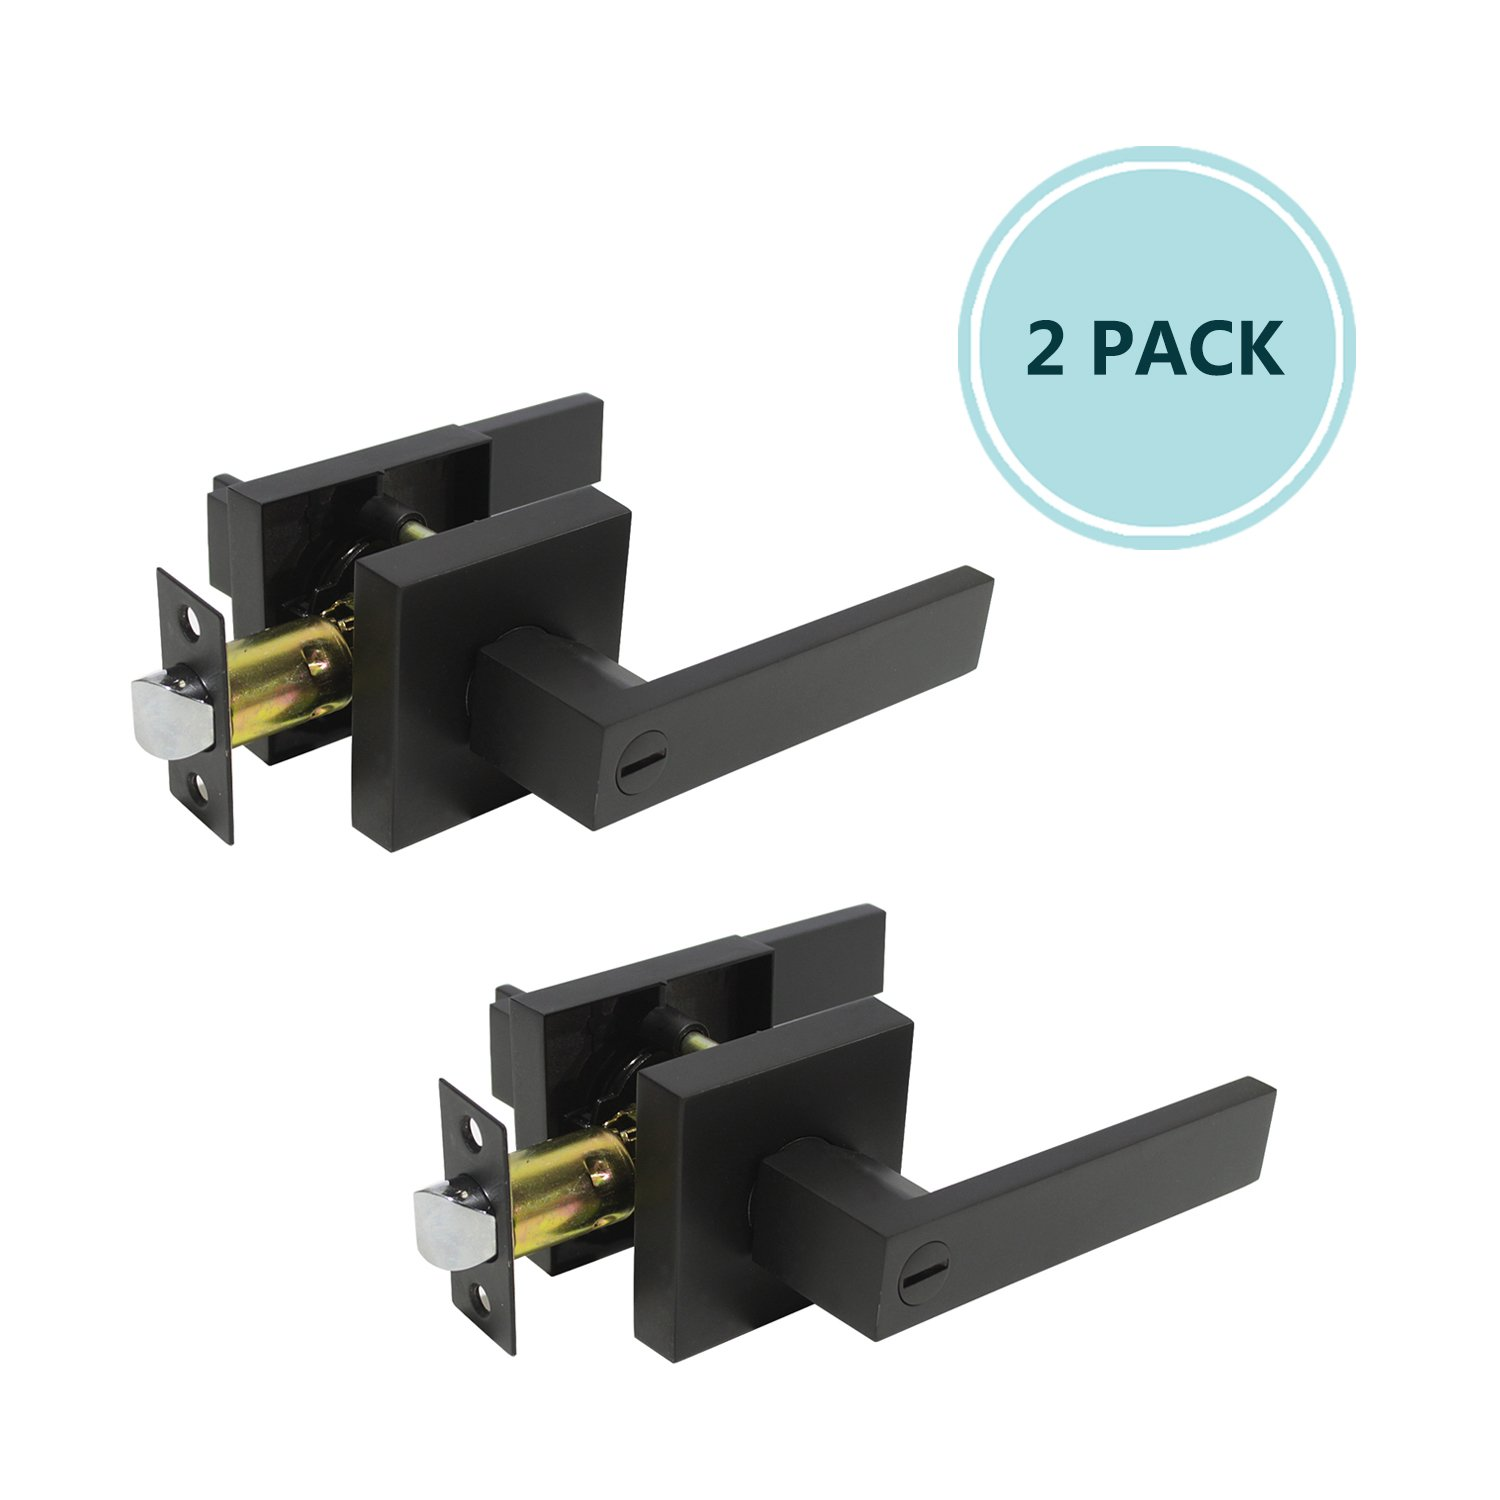 2 Pack Heavy Duty Privacy Lever Door Handle(Thumb Turn Inside Lock) for Bedroom or Bathroom with A Matte Black Finish, Right Handing 2.07 lb One Lever